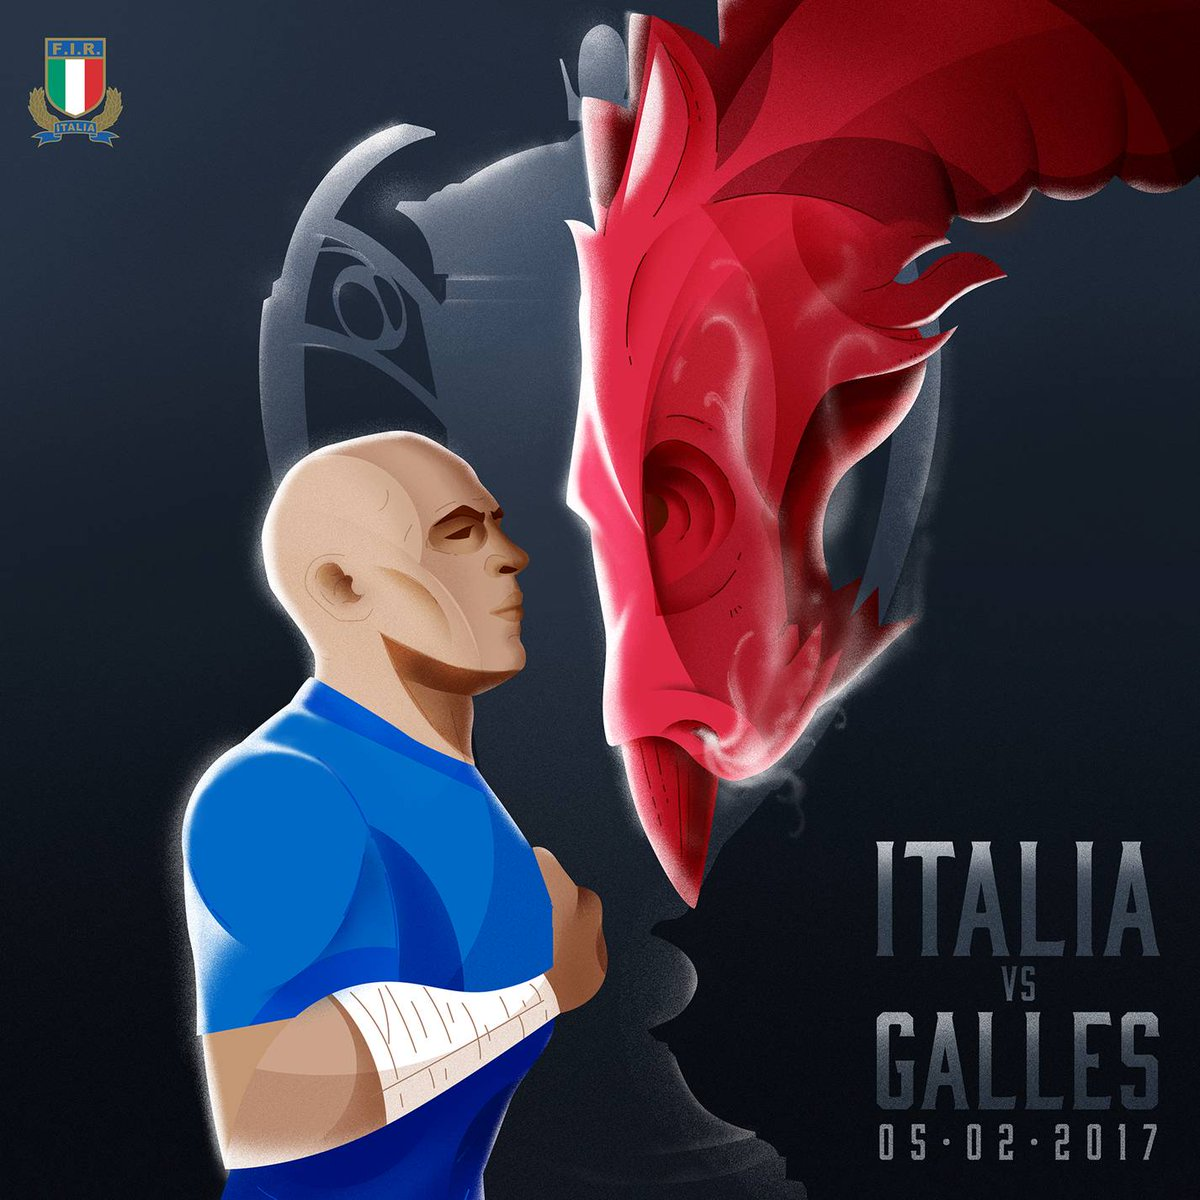 Rugby 6 Nazioni: Vedere Italia-Galles Streaming Gratis Online su DMAX